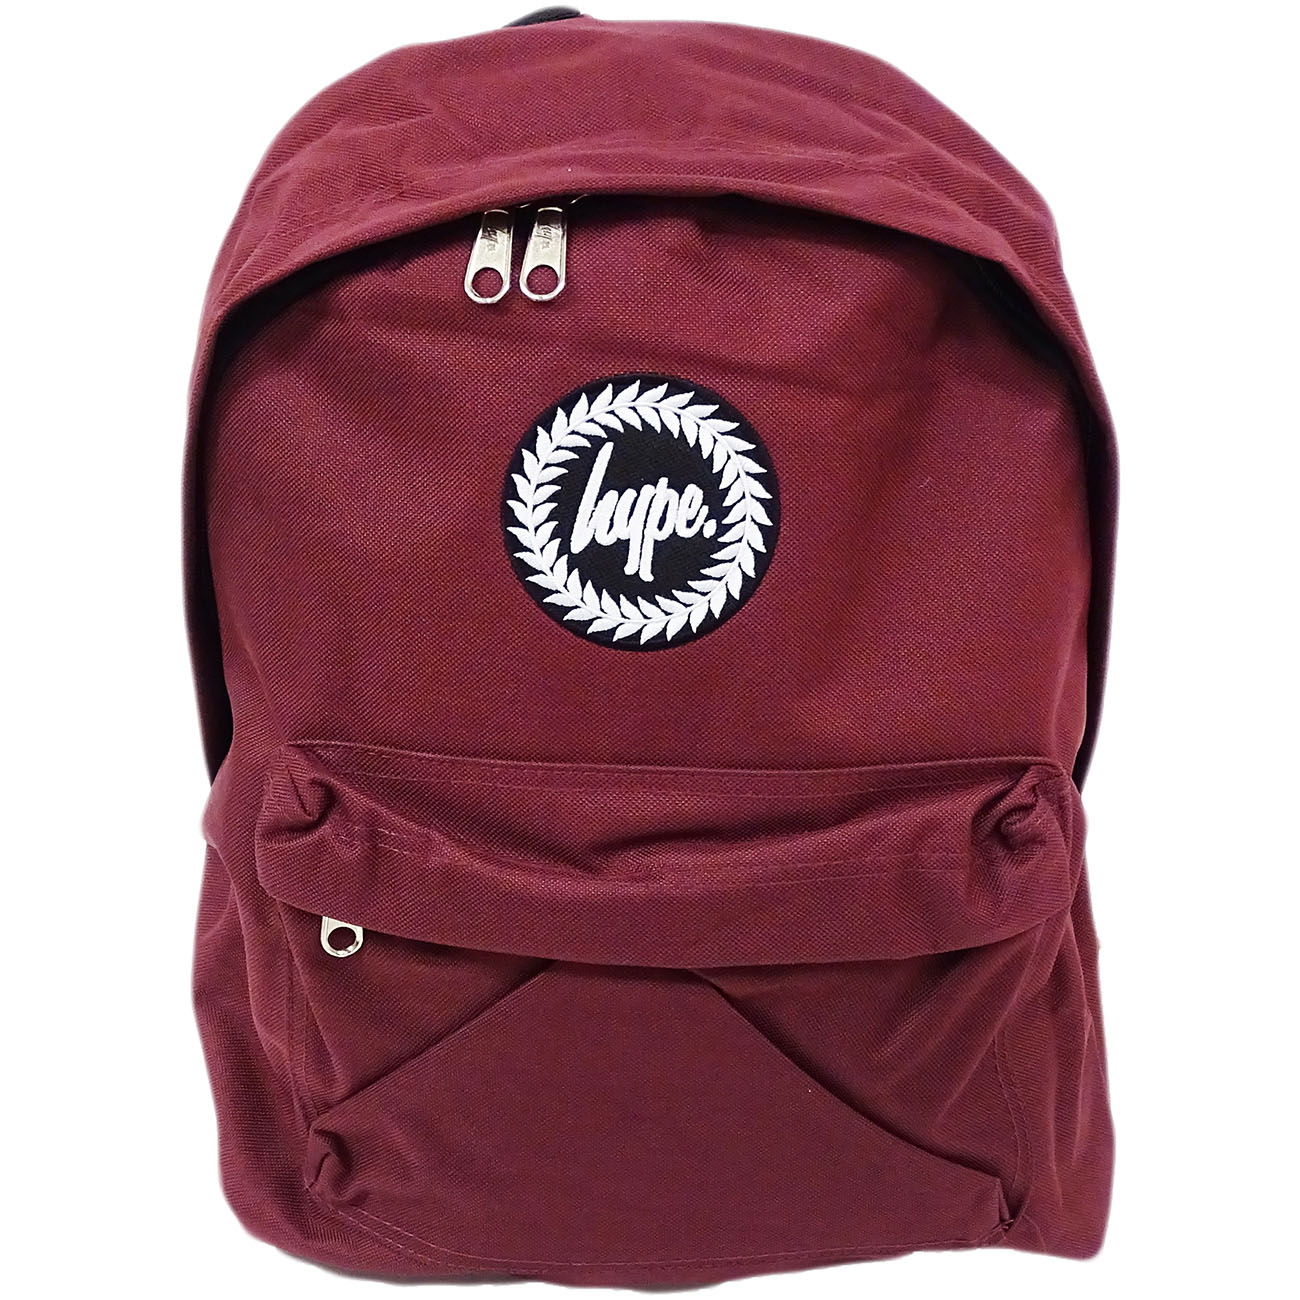 Hype Backpack Plain Burgundy Bag